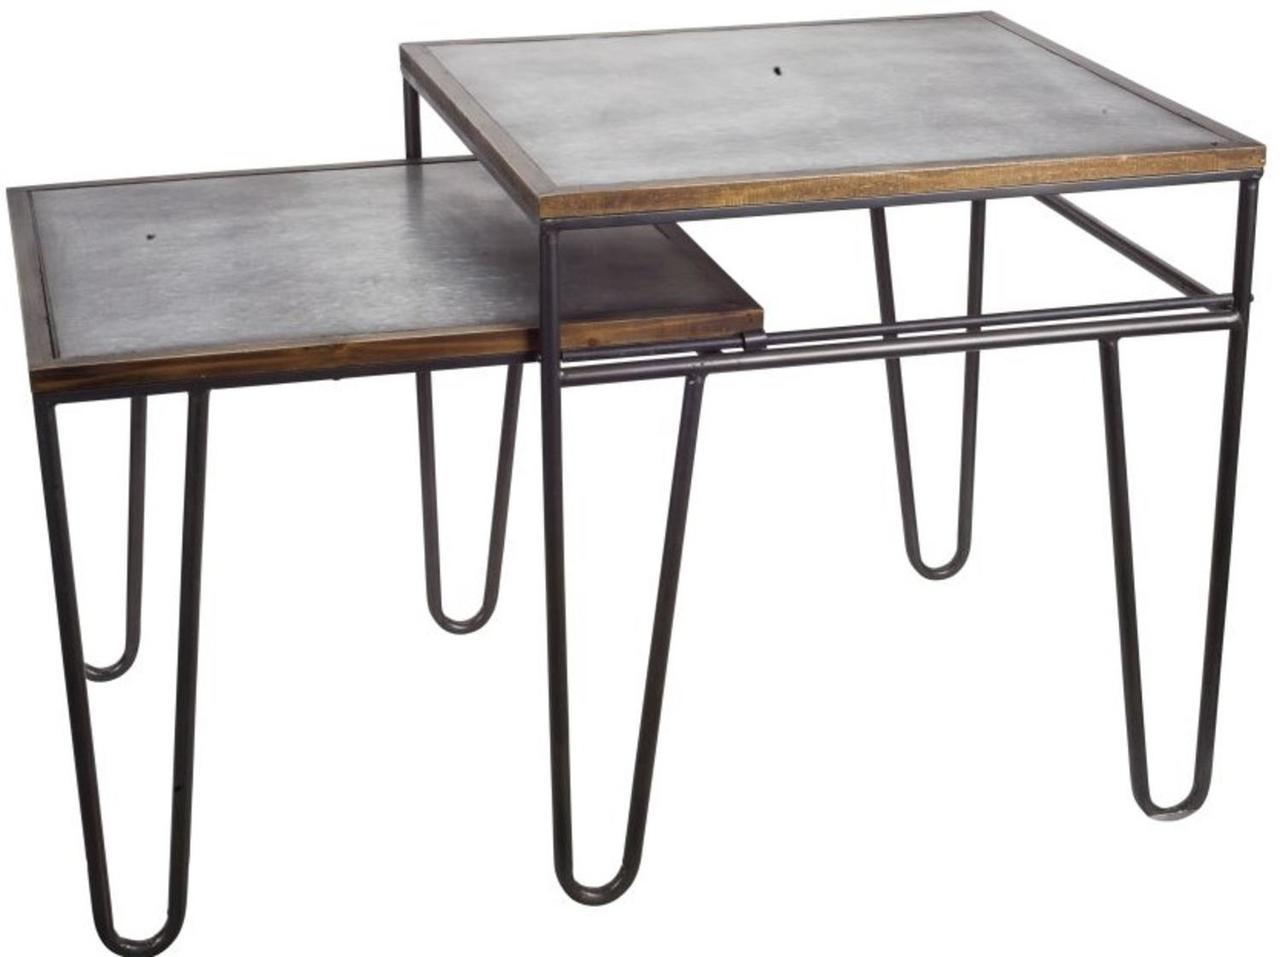 decorative metal creative square tier pull out accent table tiered black wrought iron patio end chest antique long ashley furniture wesling coffee plant stand vintage scandinavian